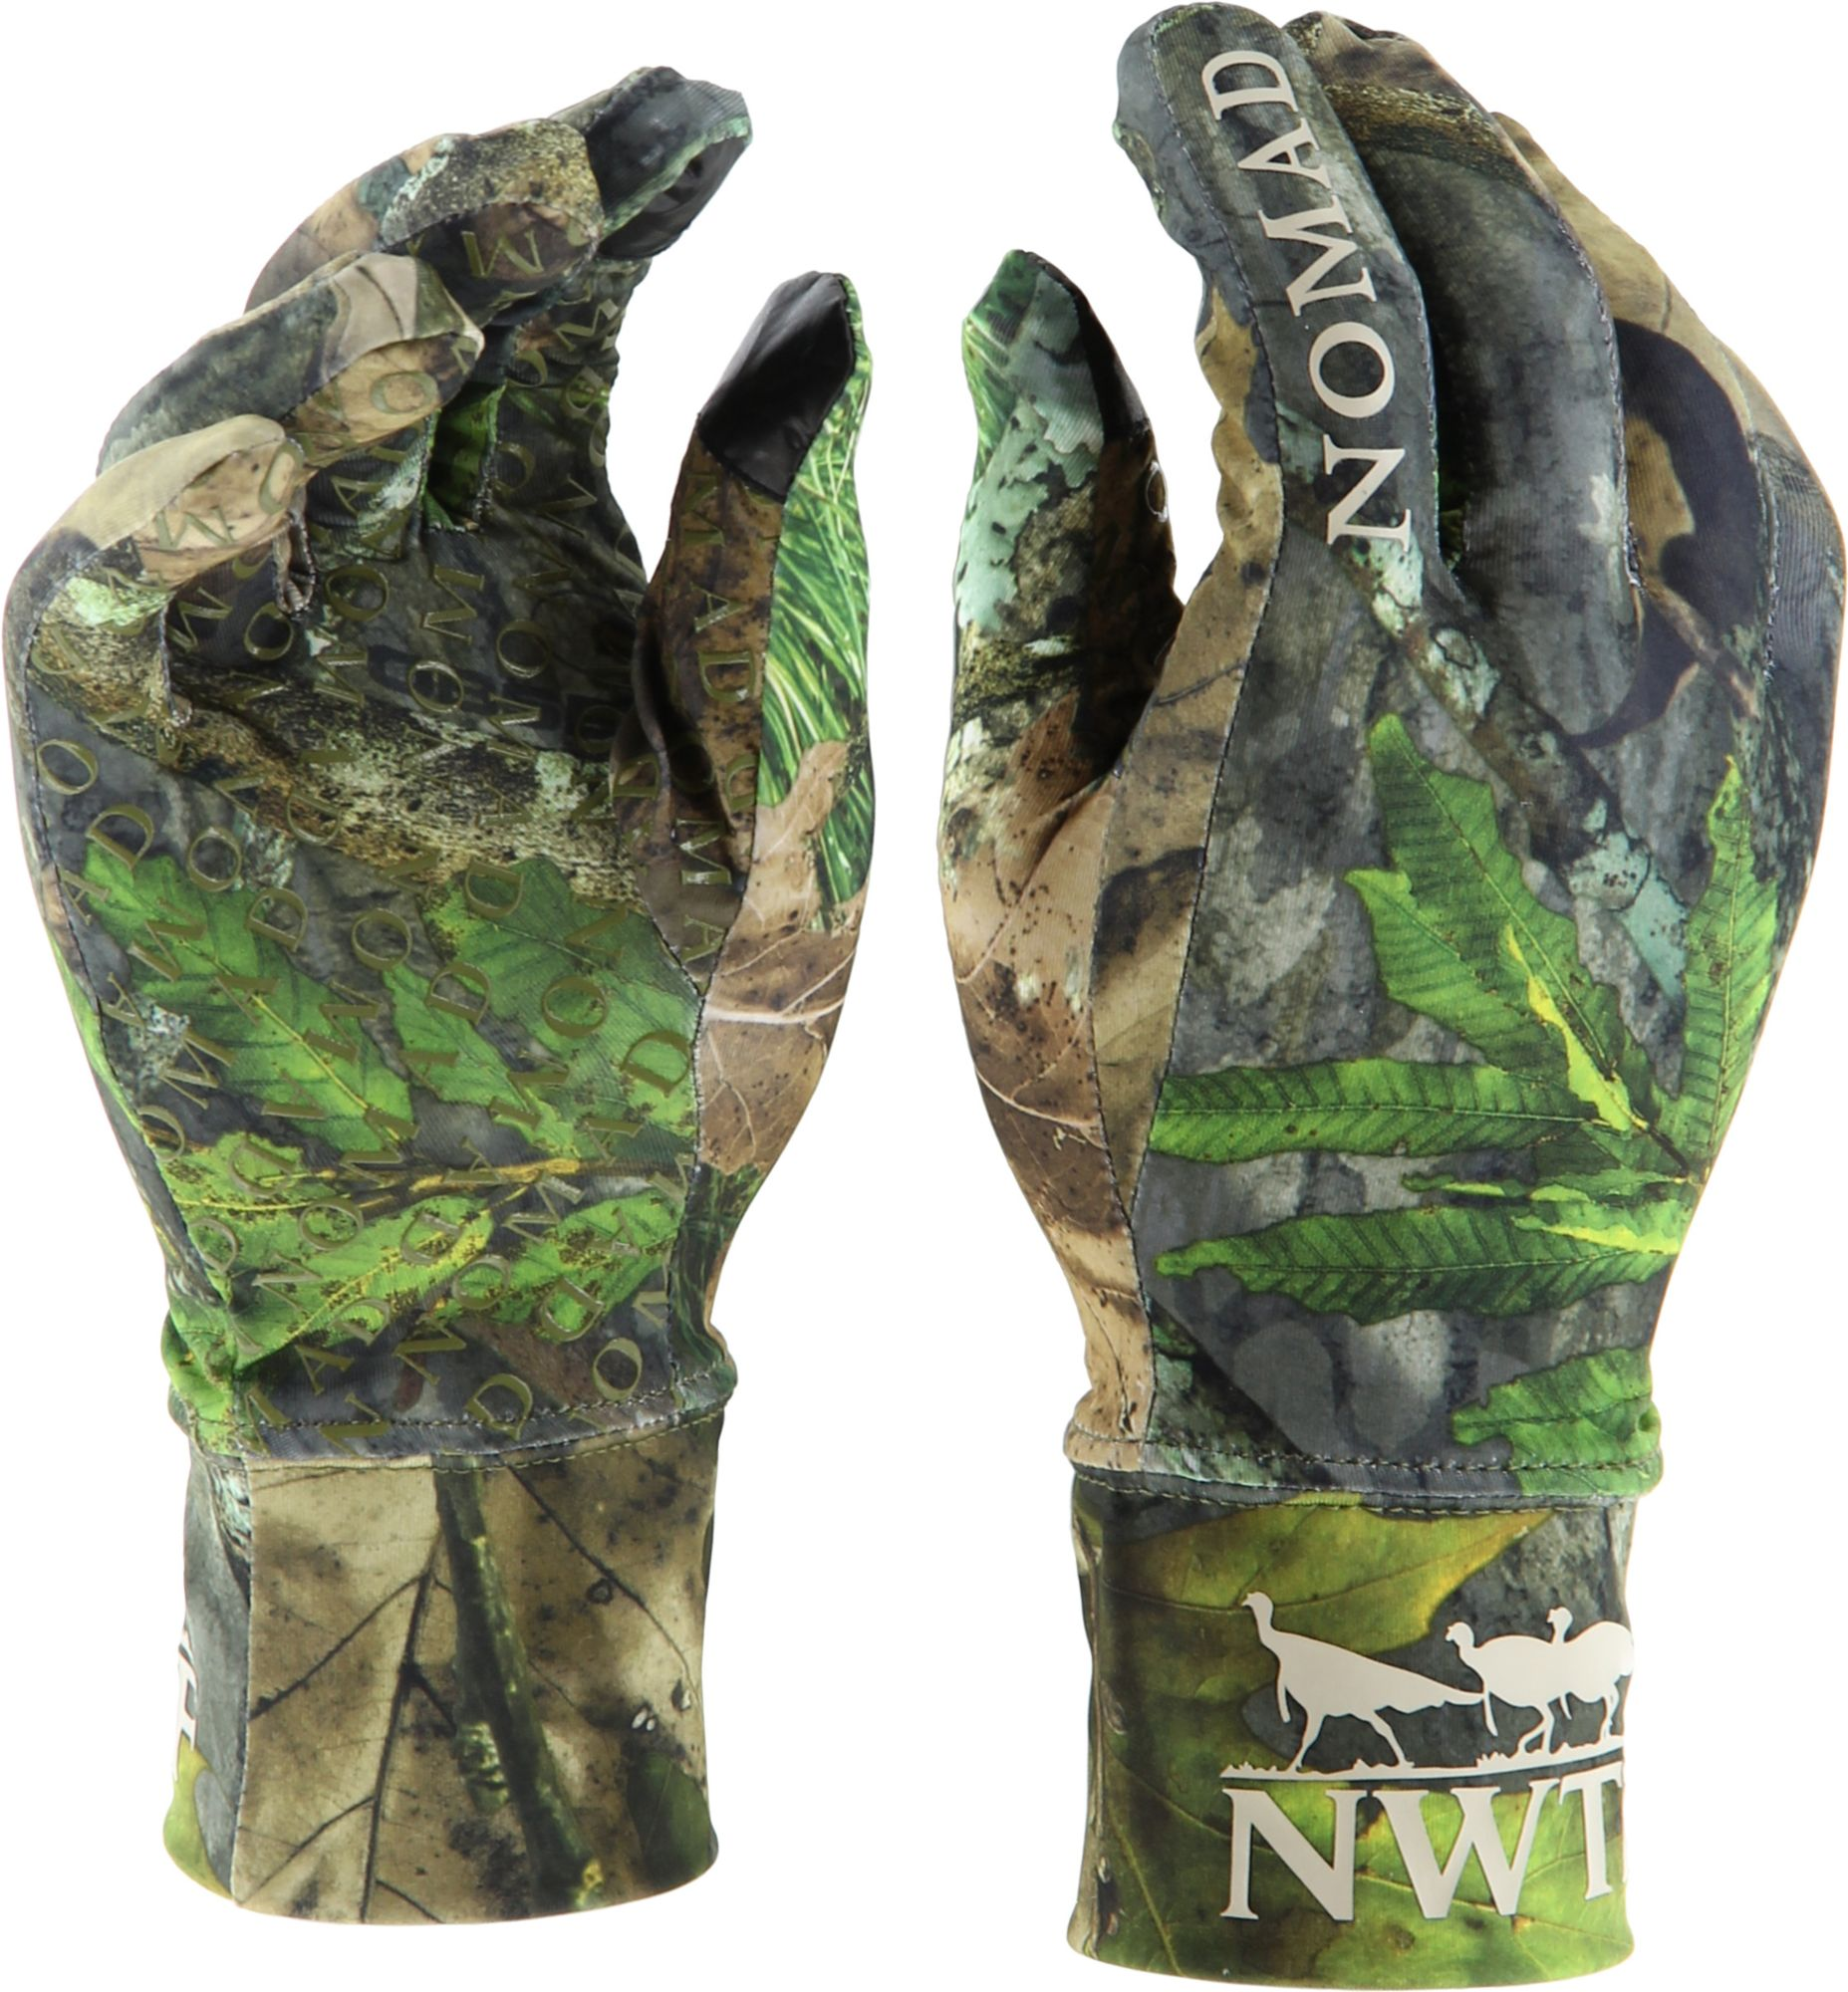 Patagonia mens gloves - Product Image Nomad Men S Nwtf Turkey Hunting Gloves